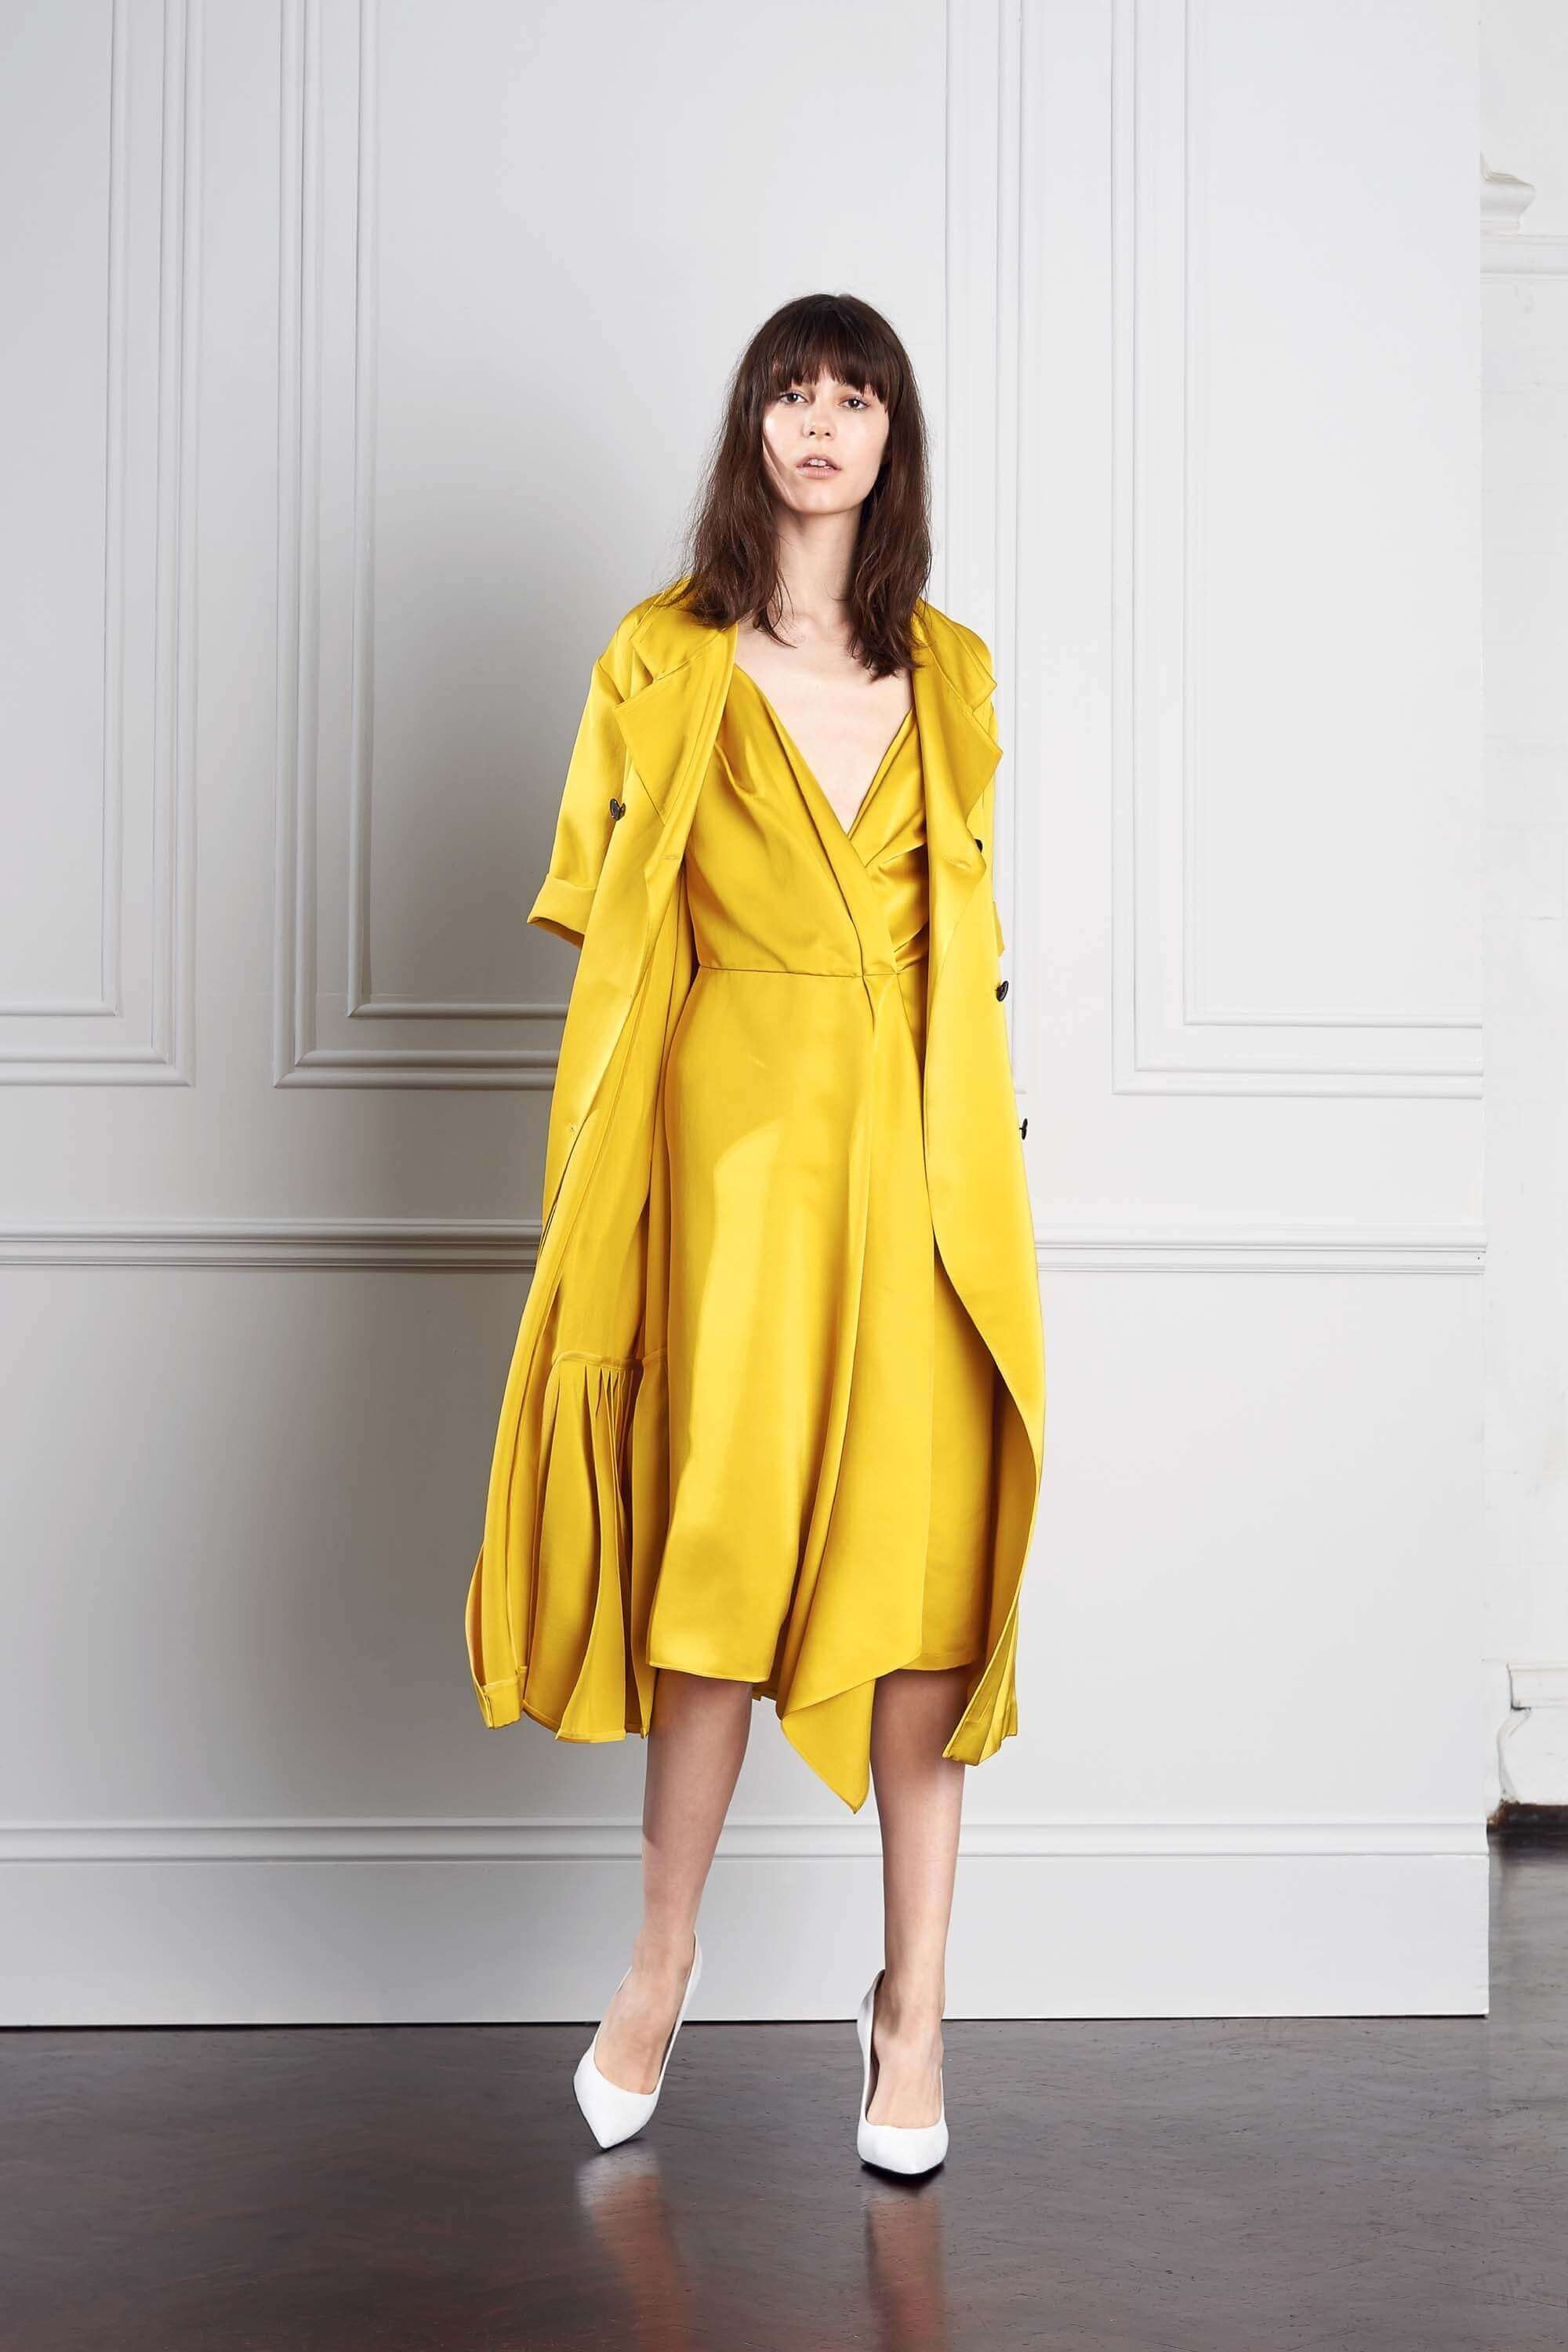 Victoria Beckham fall bridal 2017 mustard dress